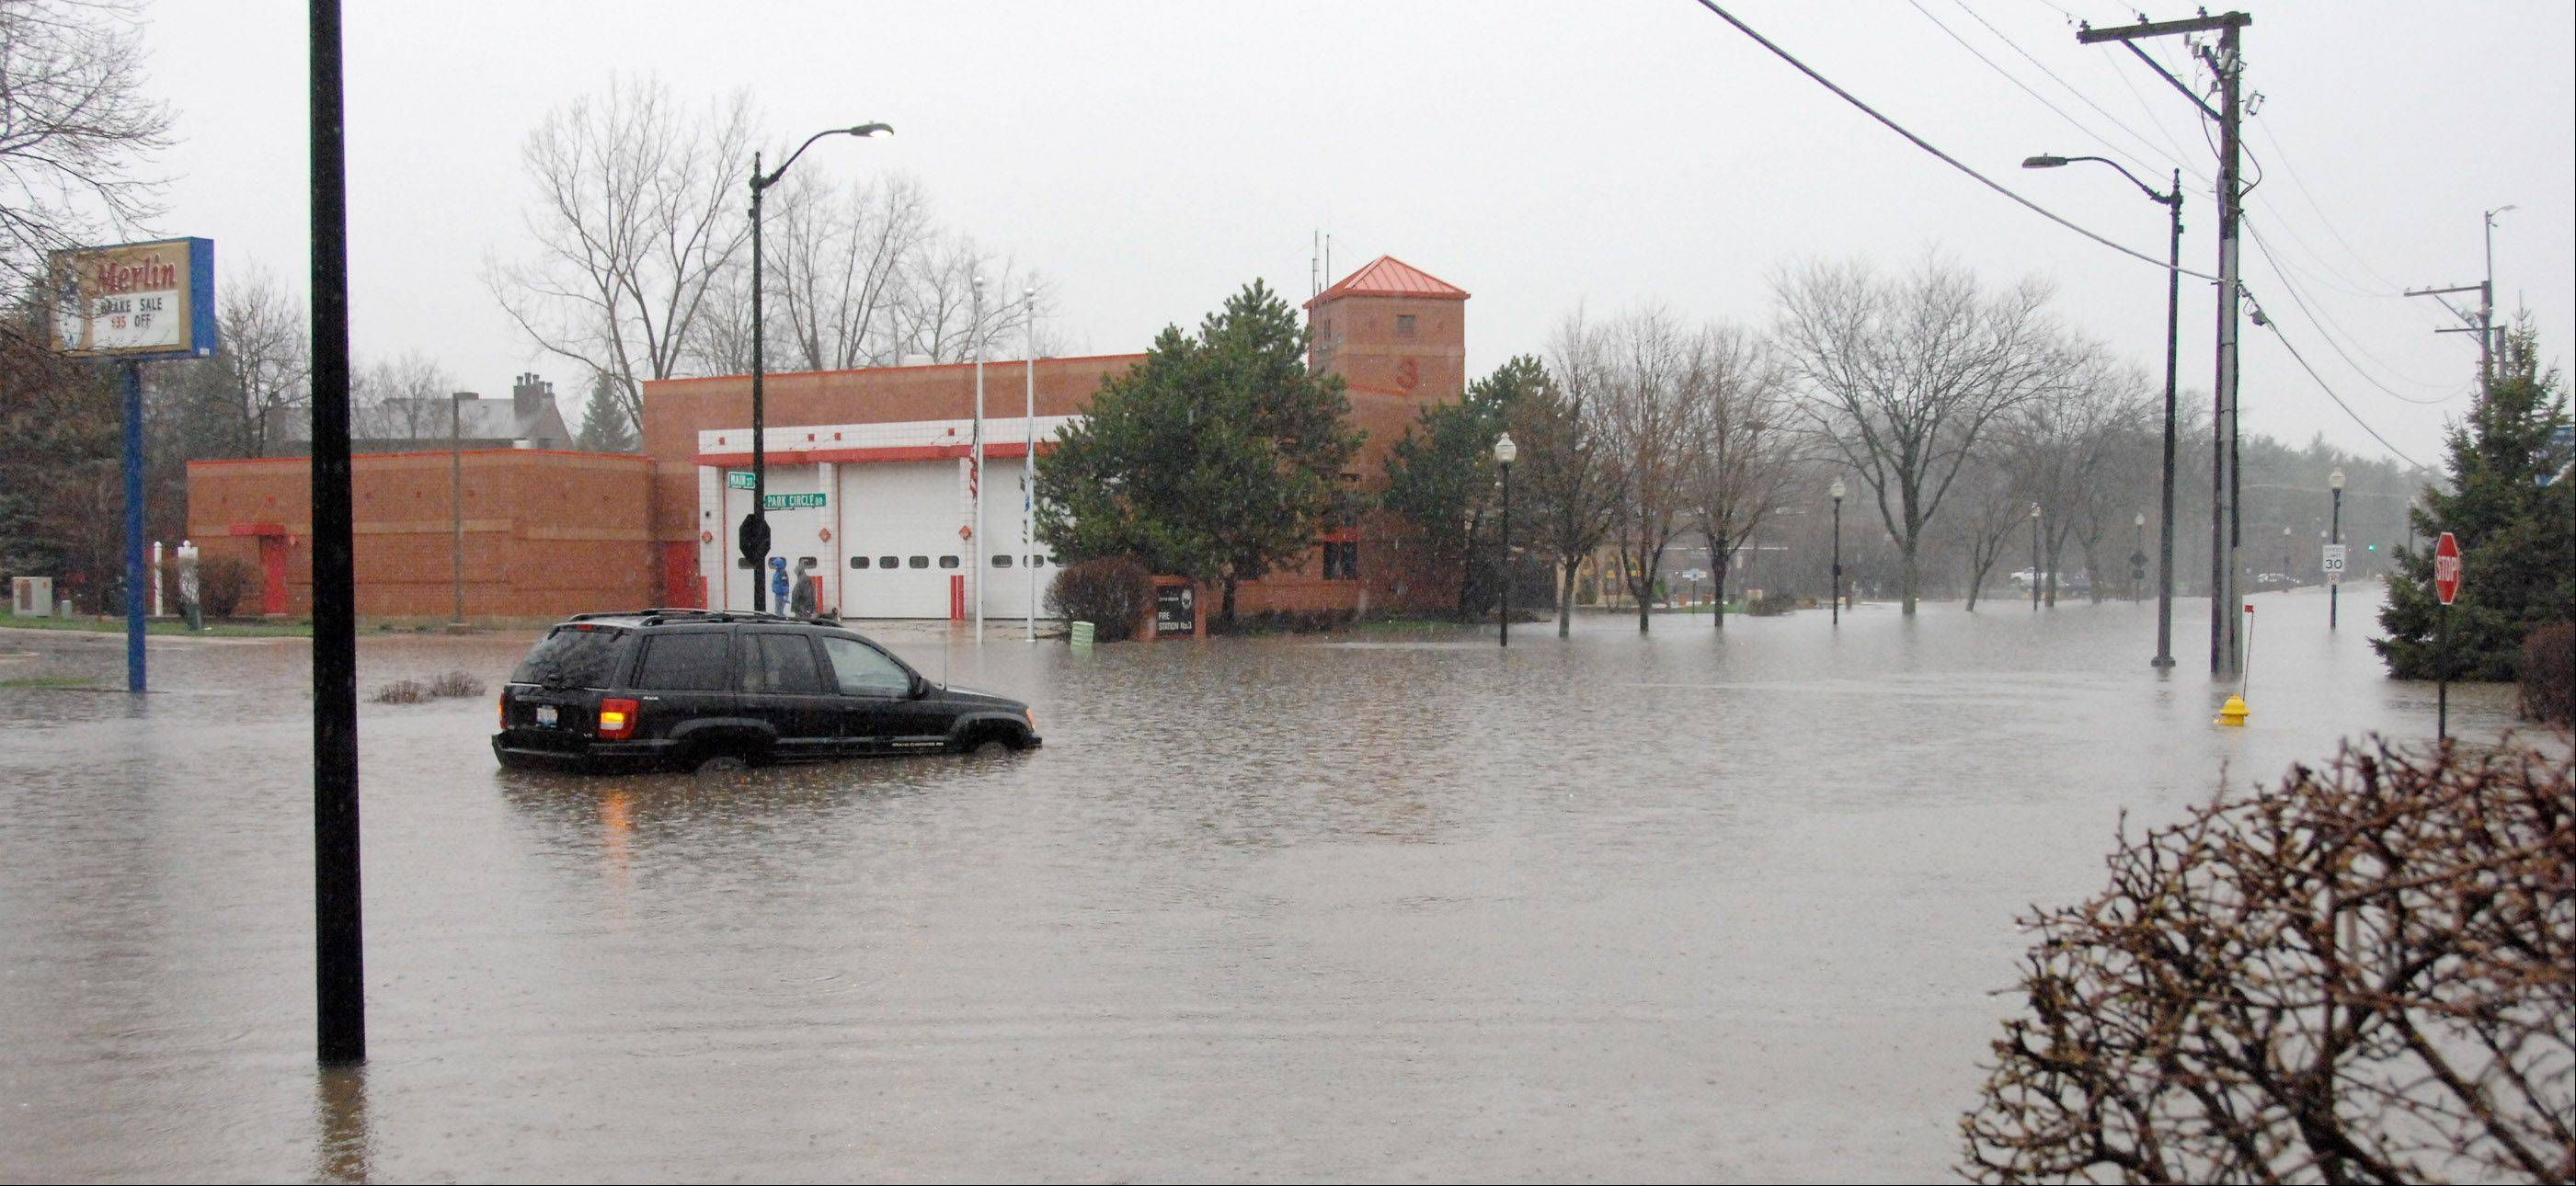 North Main Street in Wheaton is closed in front of the main fire station. Heavy rains overnight resulted in heavy flooding in the DuPage County area.